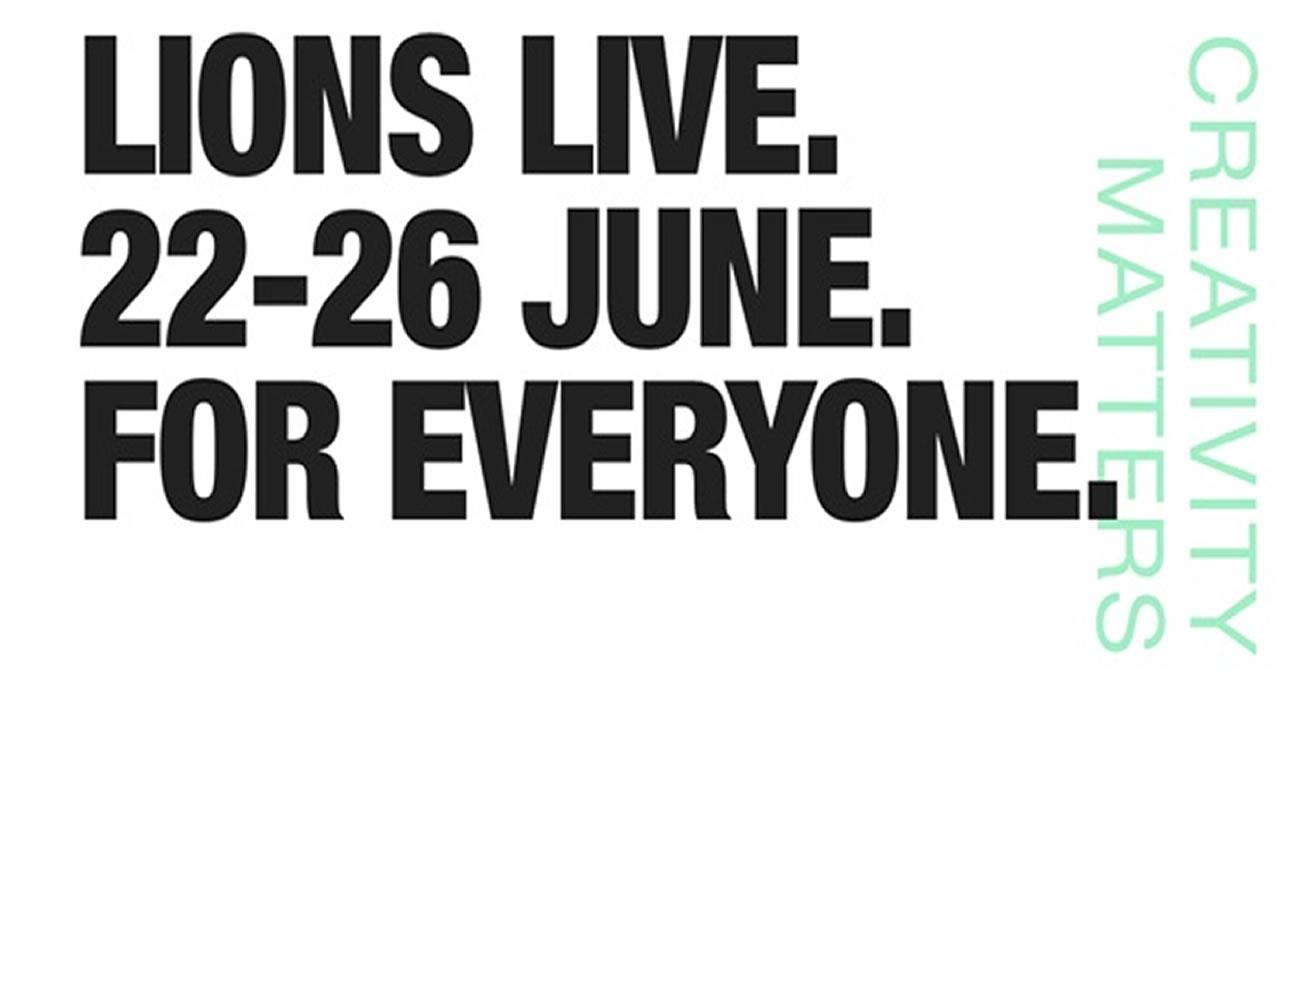 Cannes Lions anuncia Young Lions Live